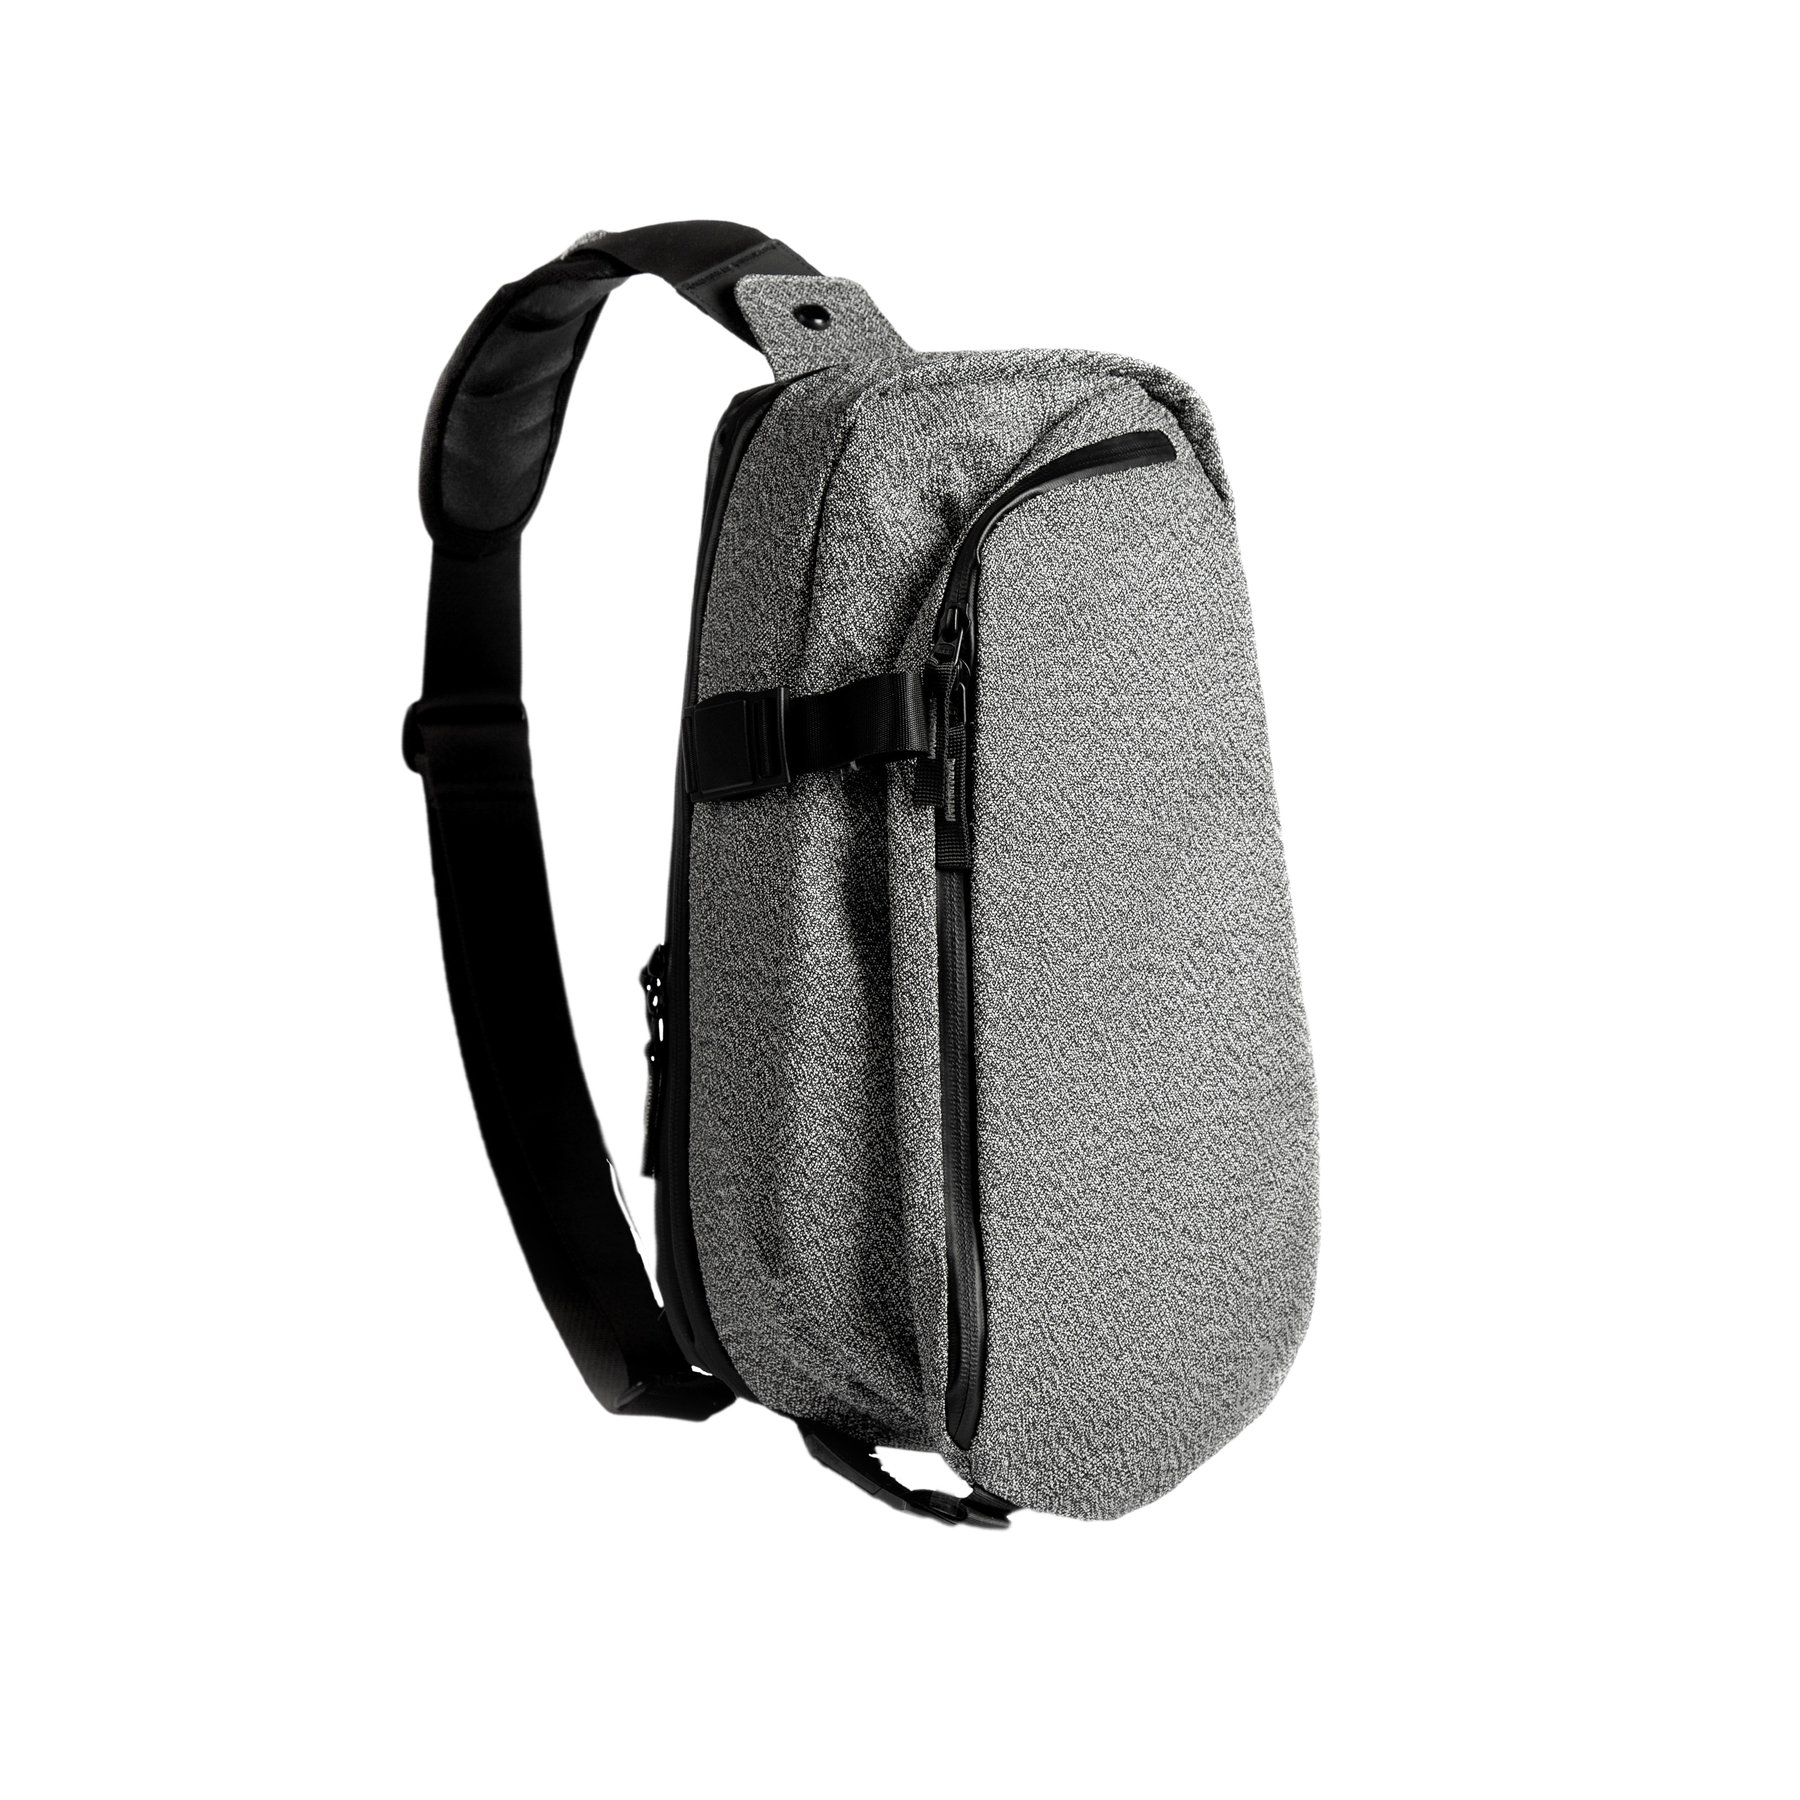 CYCOP Daysling 2.0 PRO - Best Daily Sling Bag Review